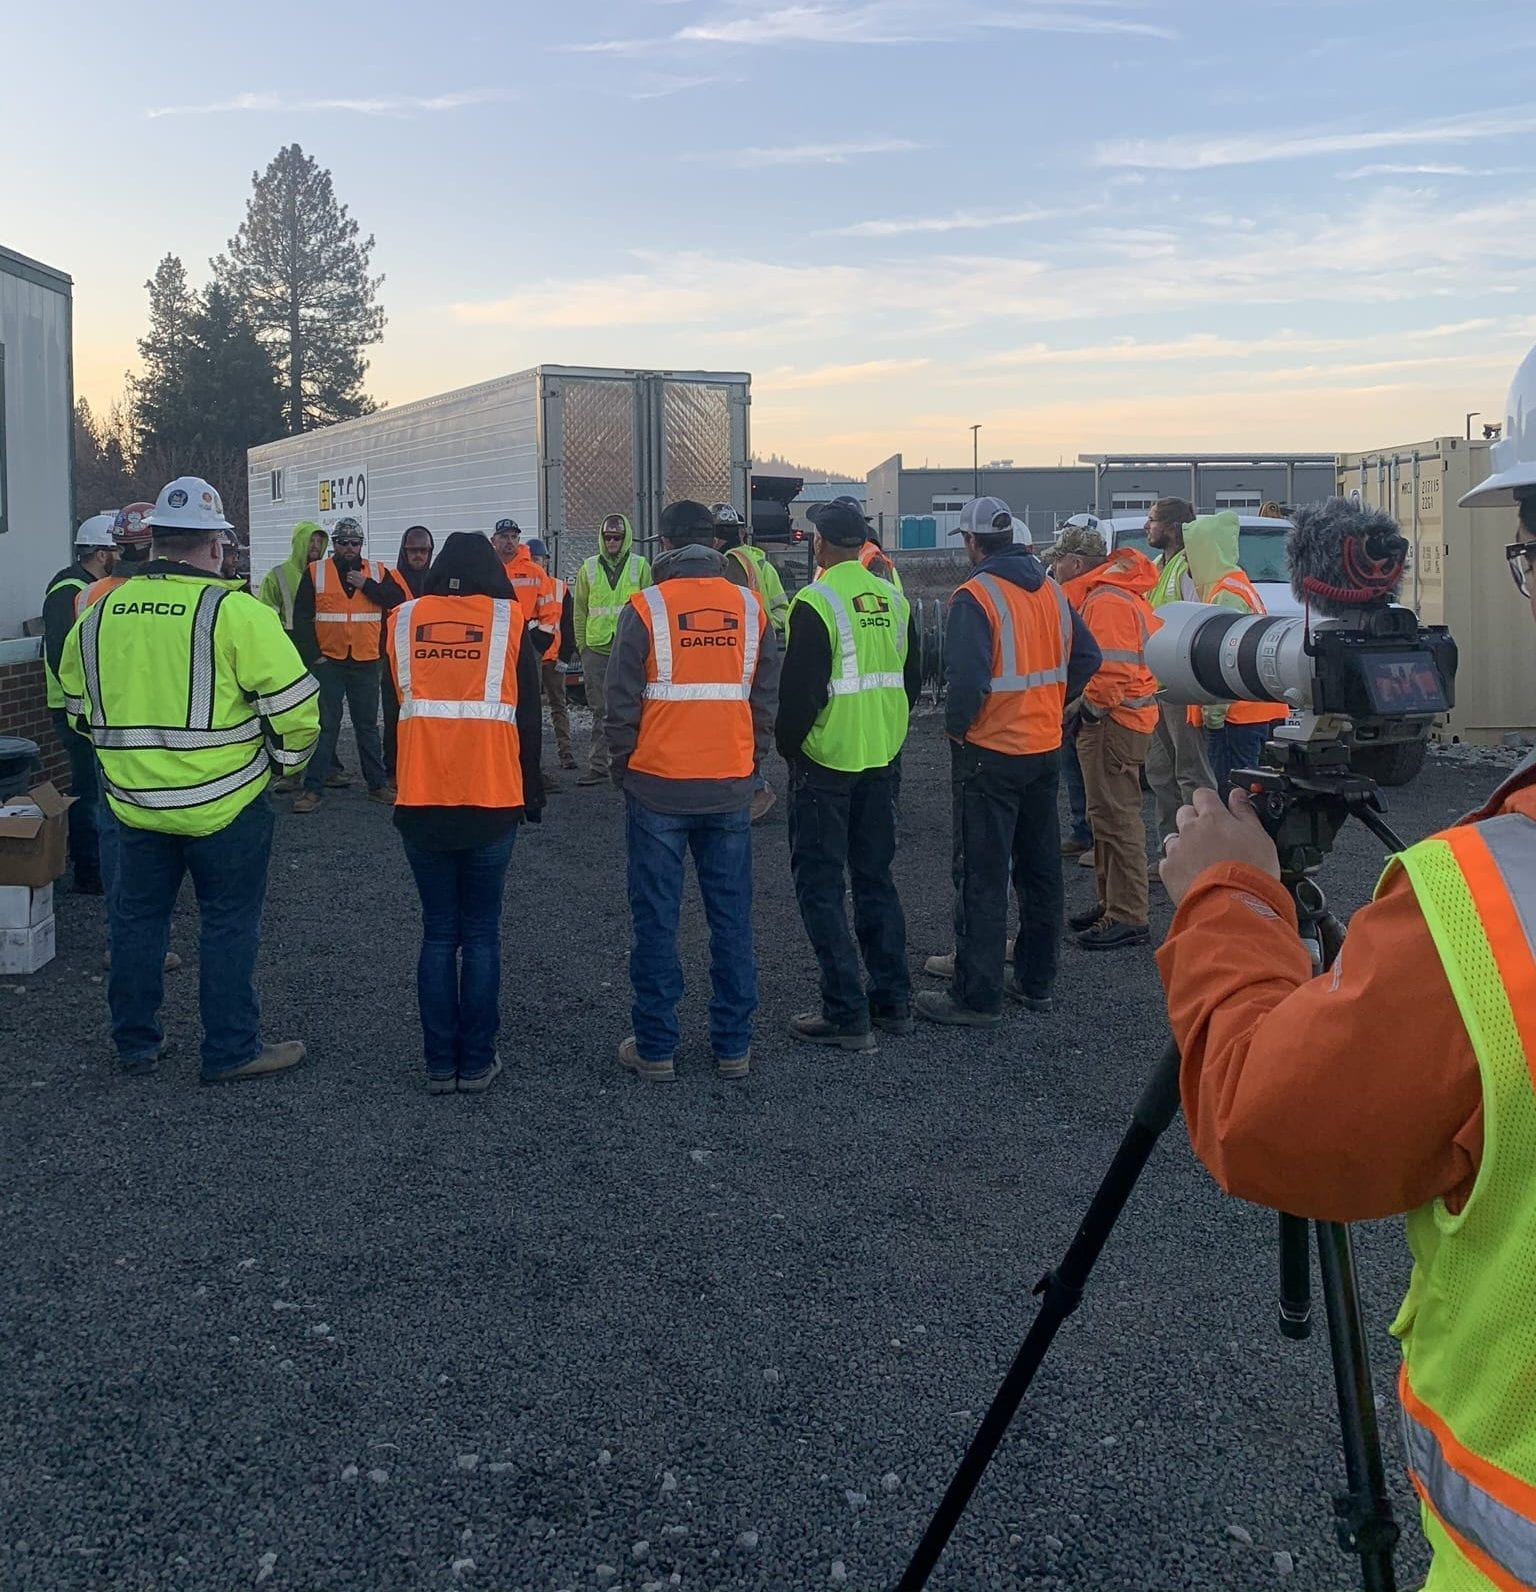 Production team filing the crew gathered in a circle wearing their high visibility safety vests